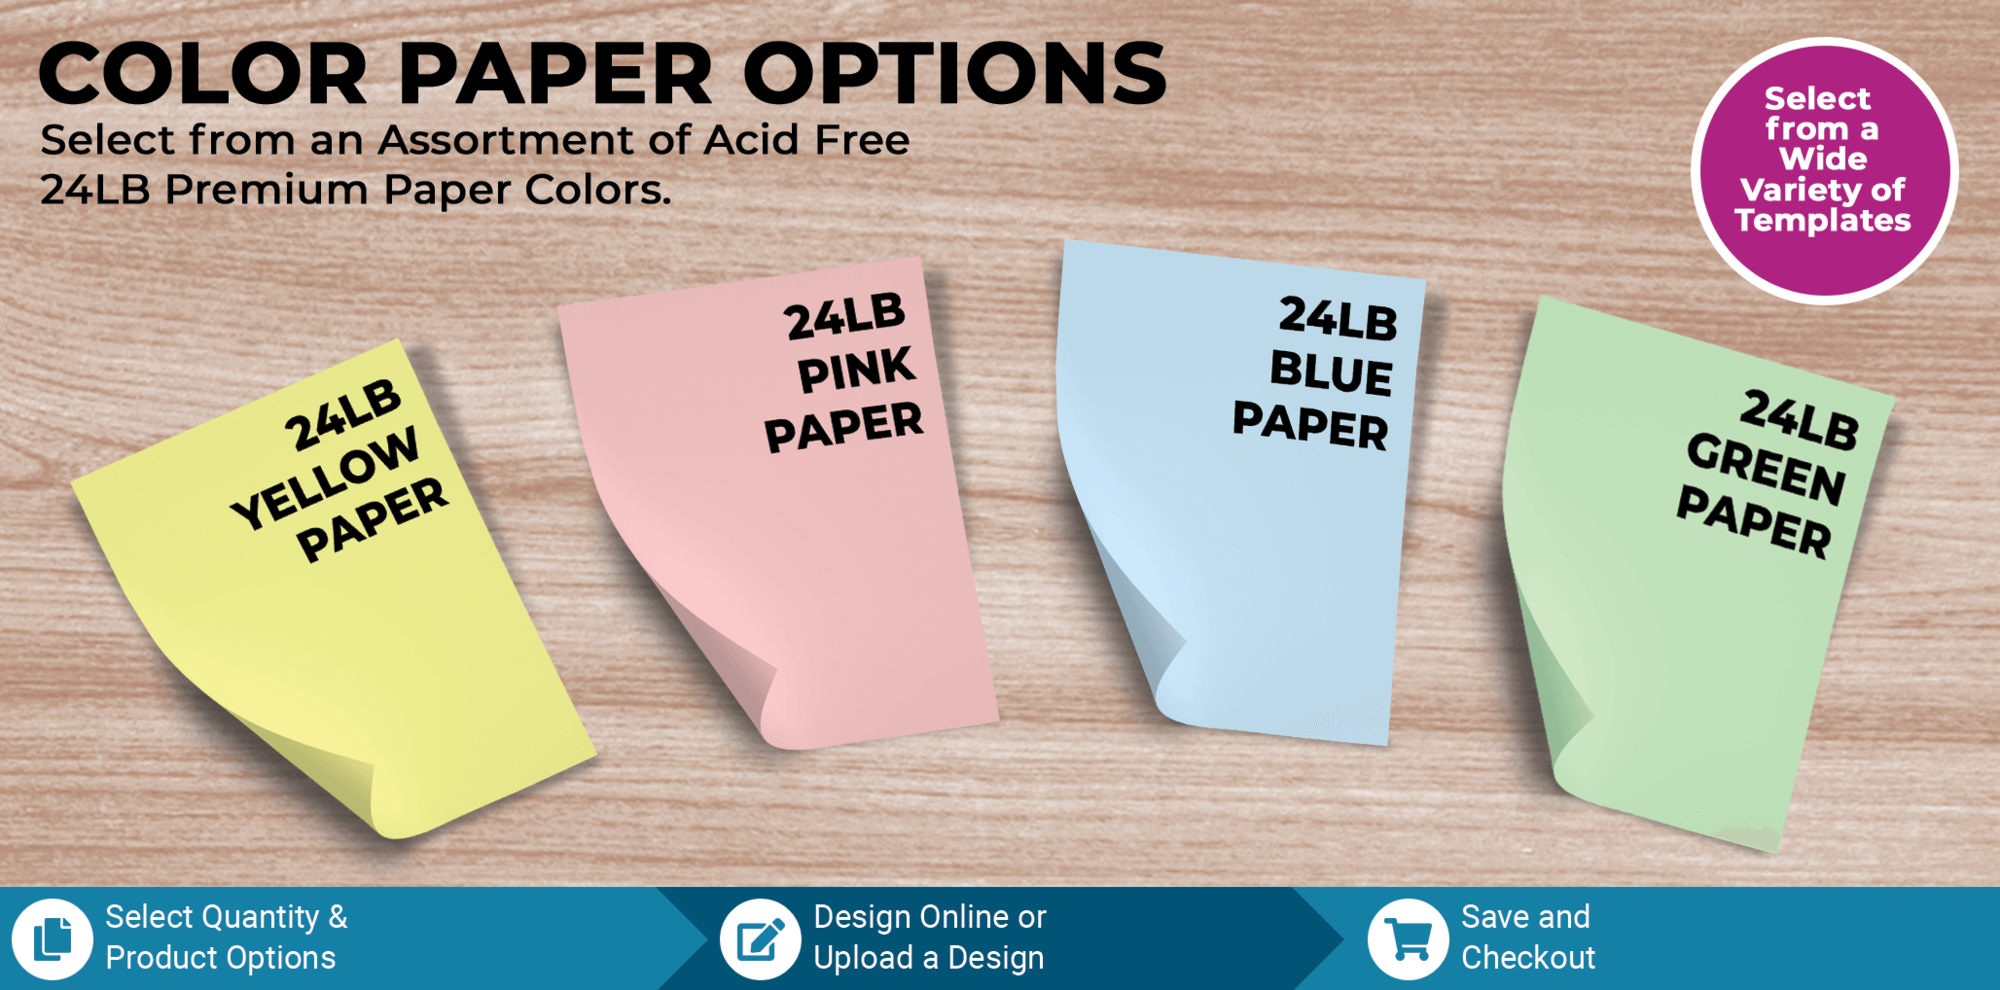 https://printpps.com/images/products_gallery_images/Custom-Sticky-Notes_Product-Page-Banner-281.png